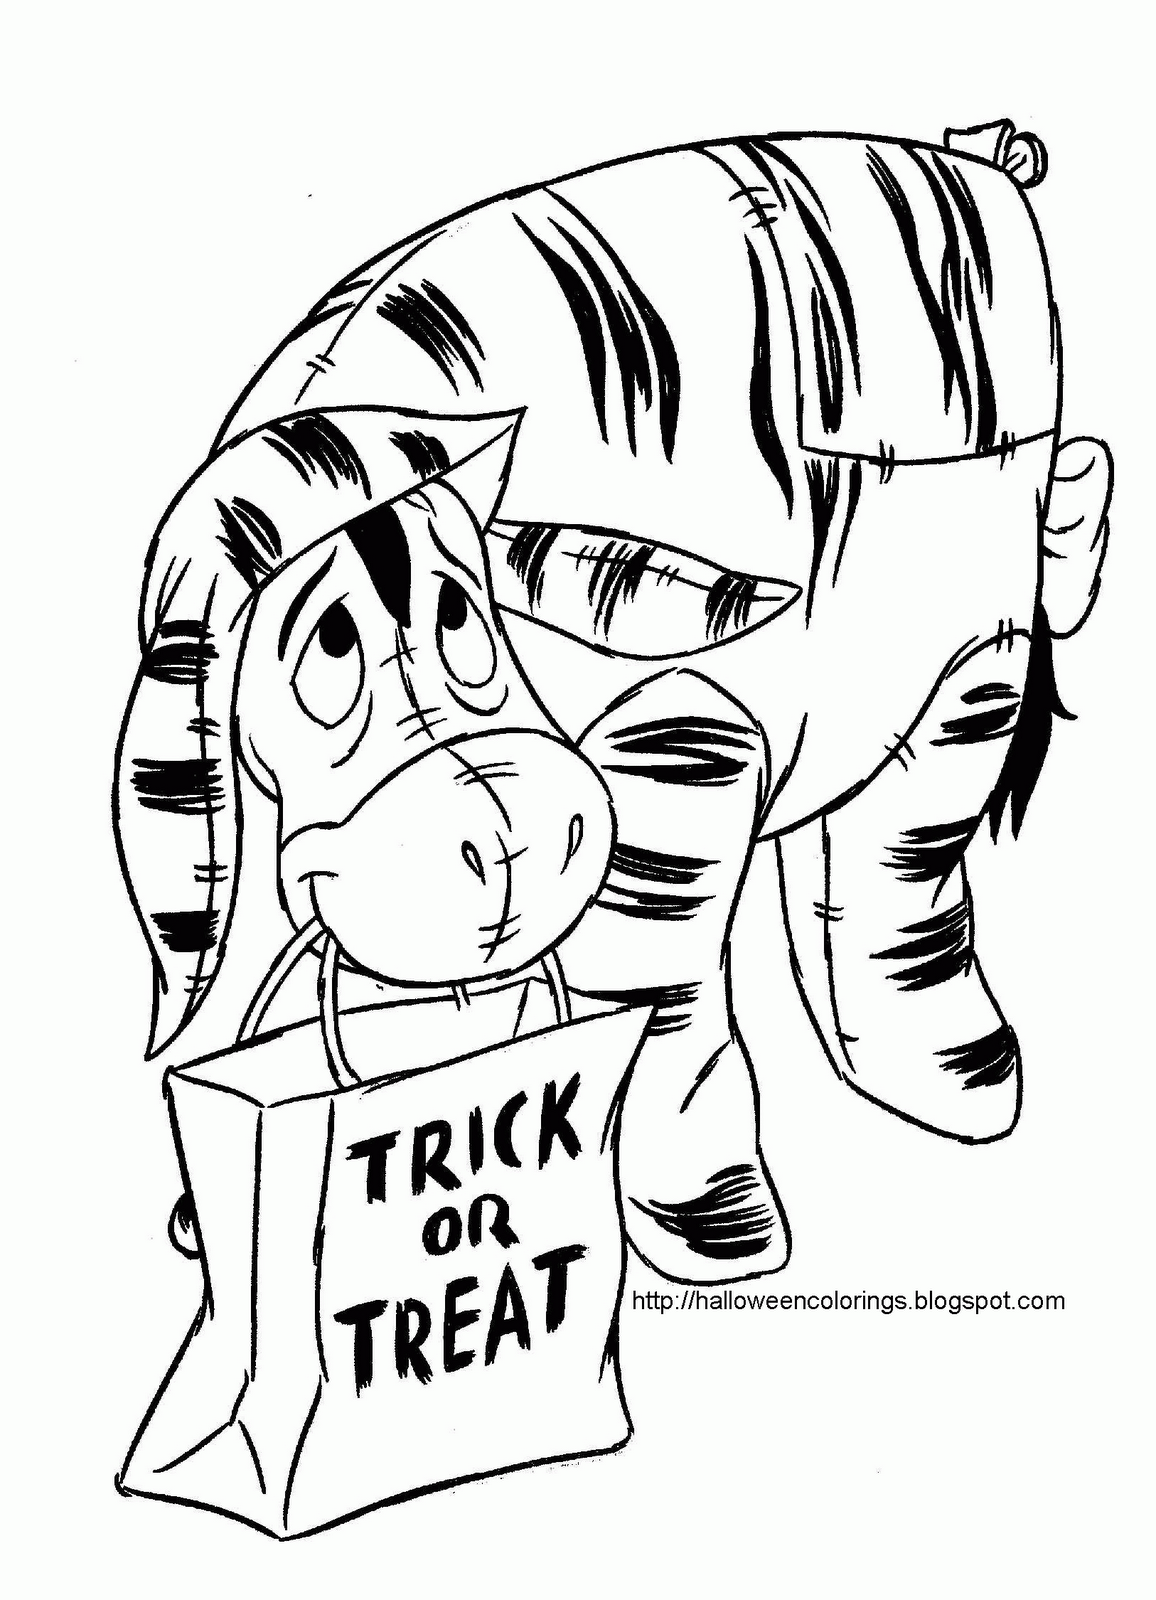 Halloween coloring printables disney - Halloween Coloring Pages Halloween Colorings